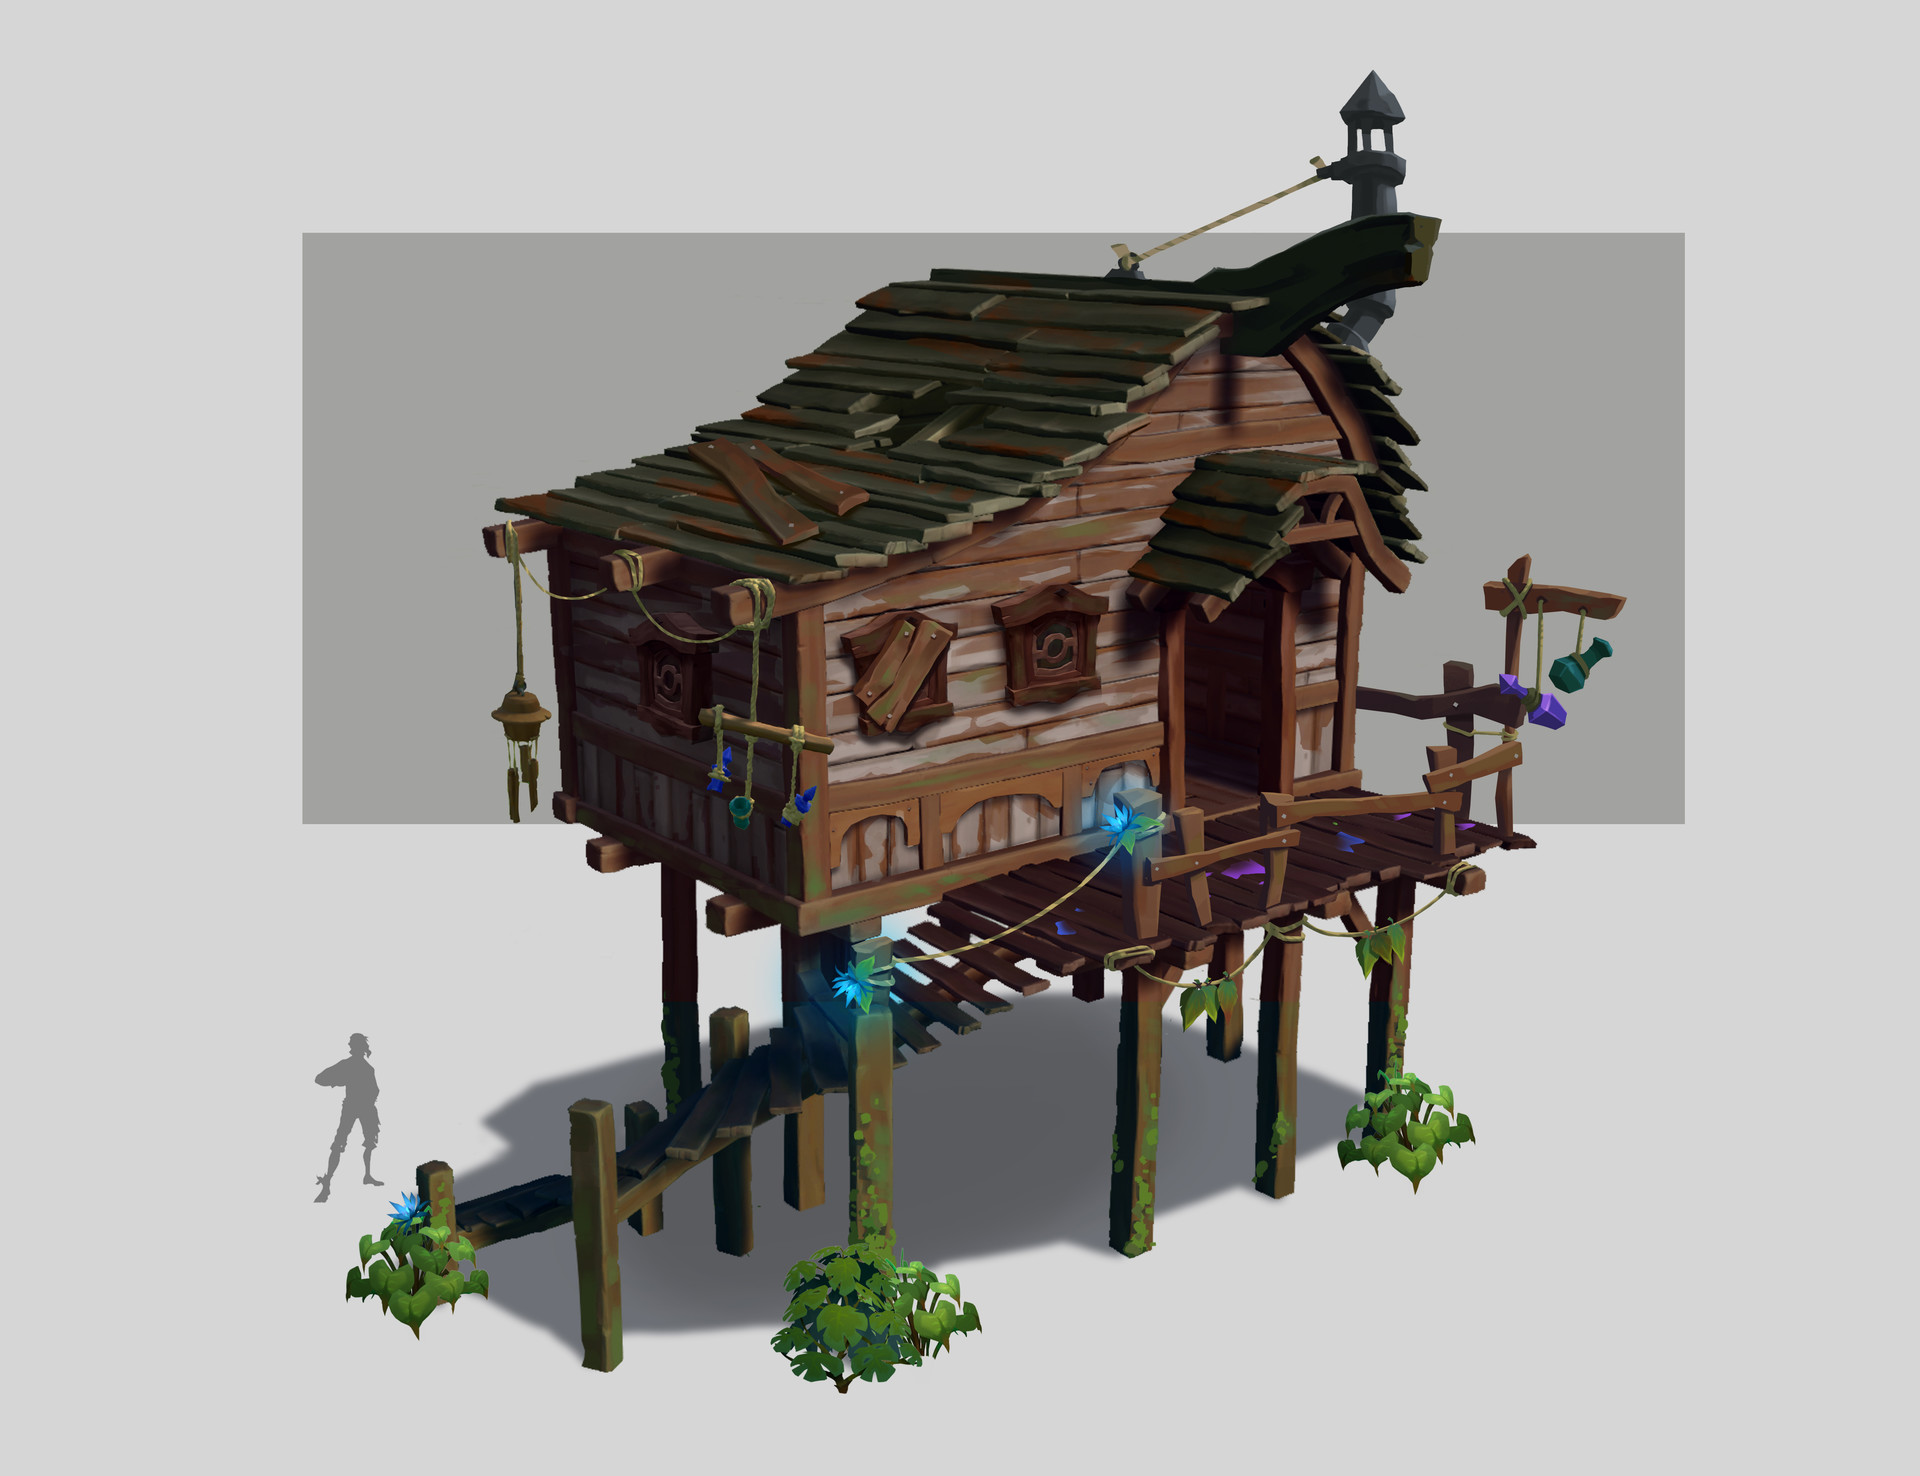 ArtStation - Sea of Thieves - Architecture and props design